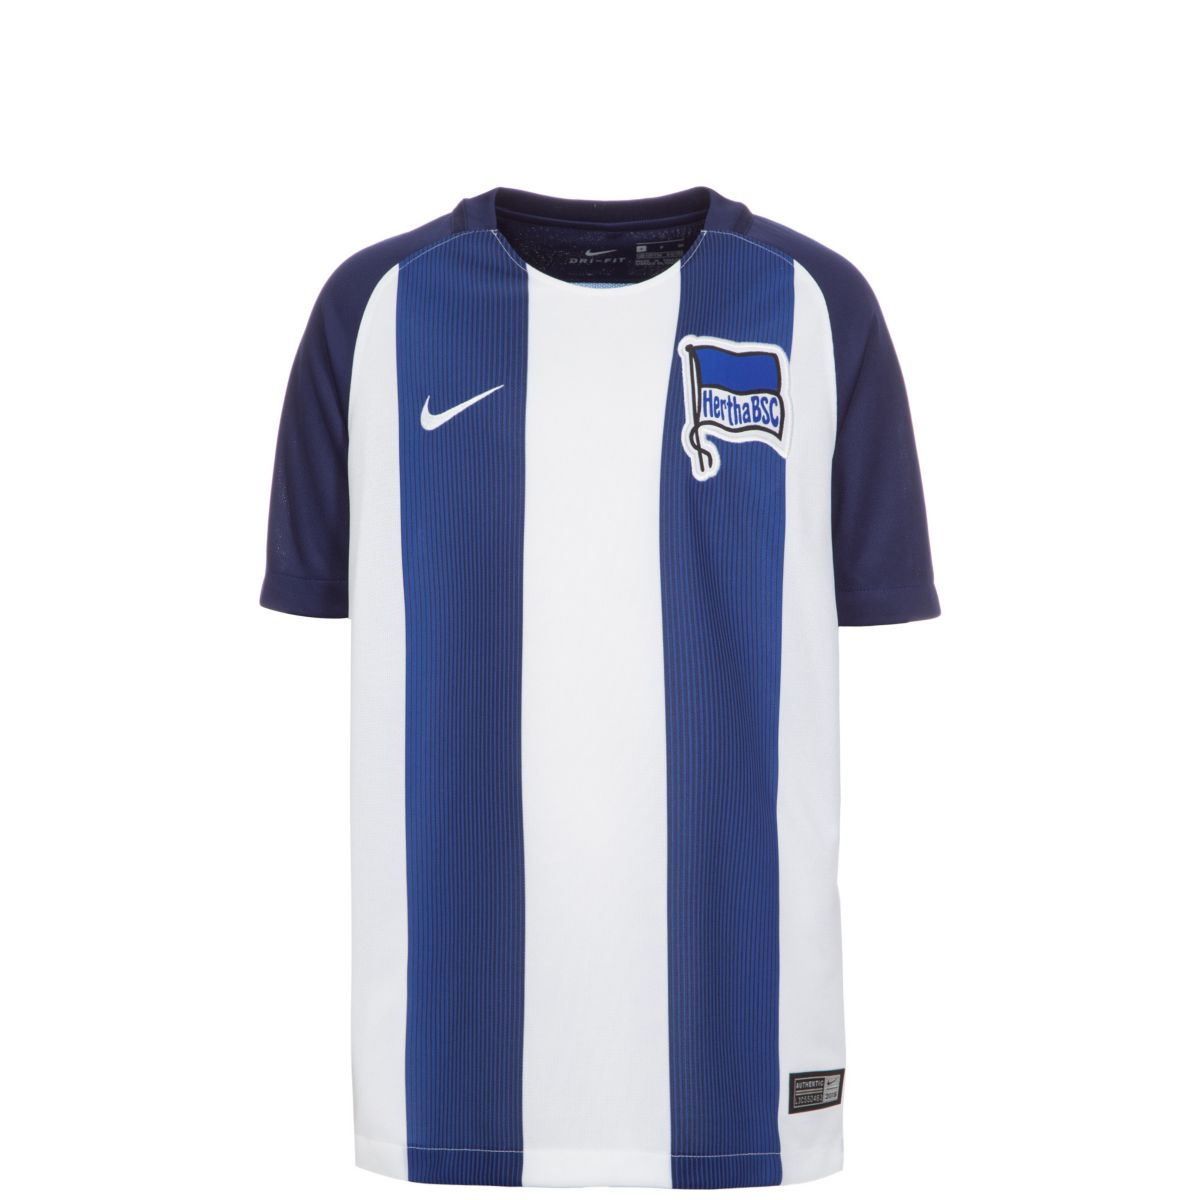 NIKE Hertha BSC Berlin Trikot Home Stadium 2016...